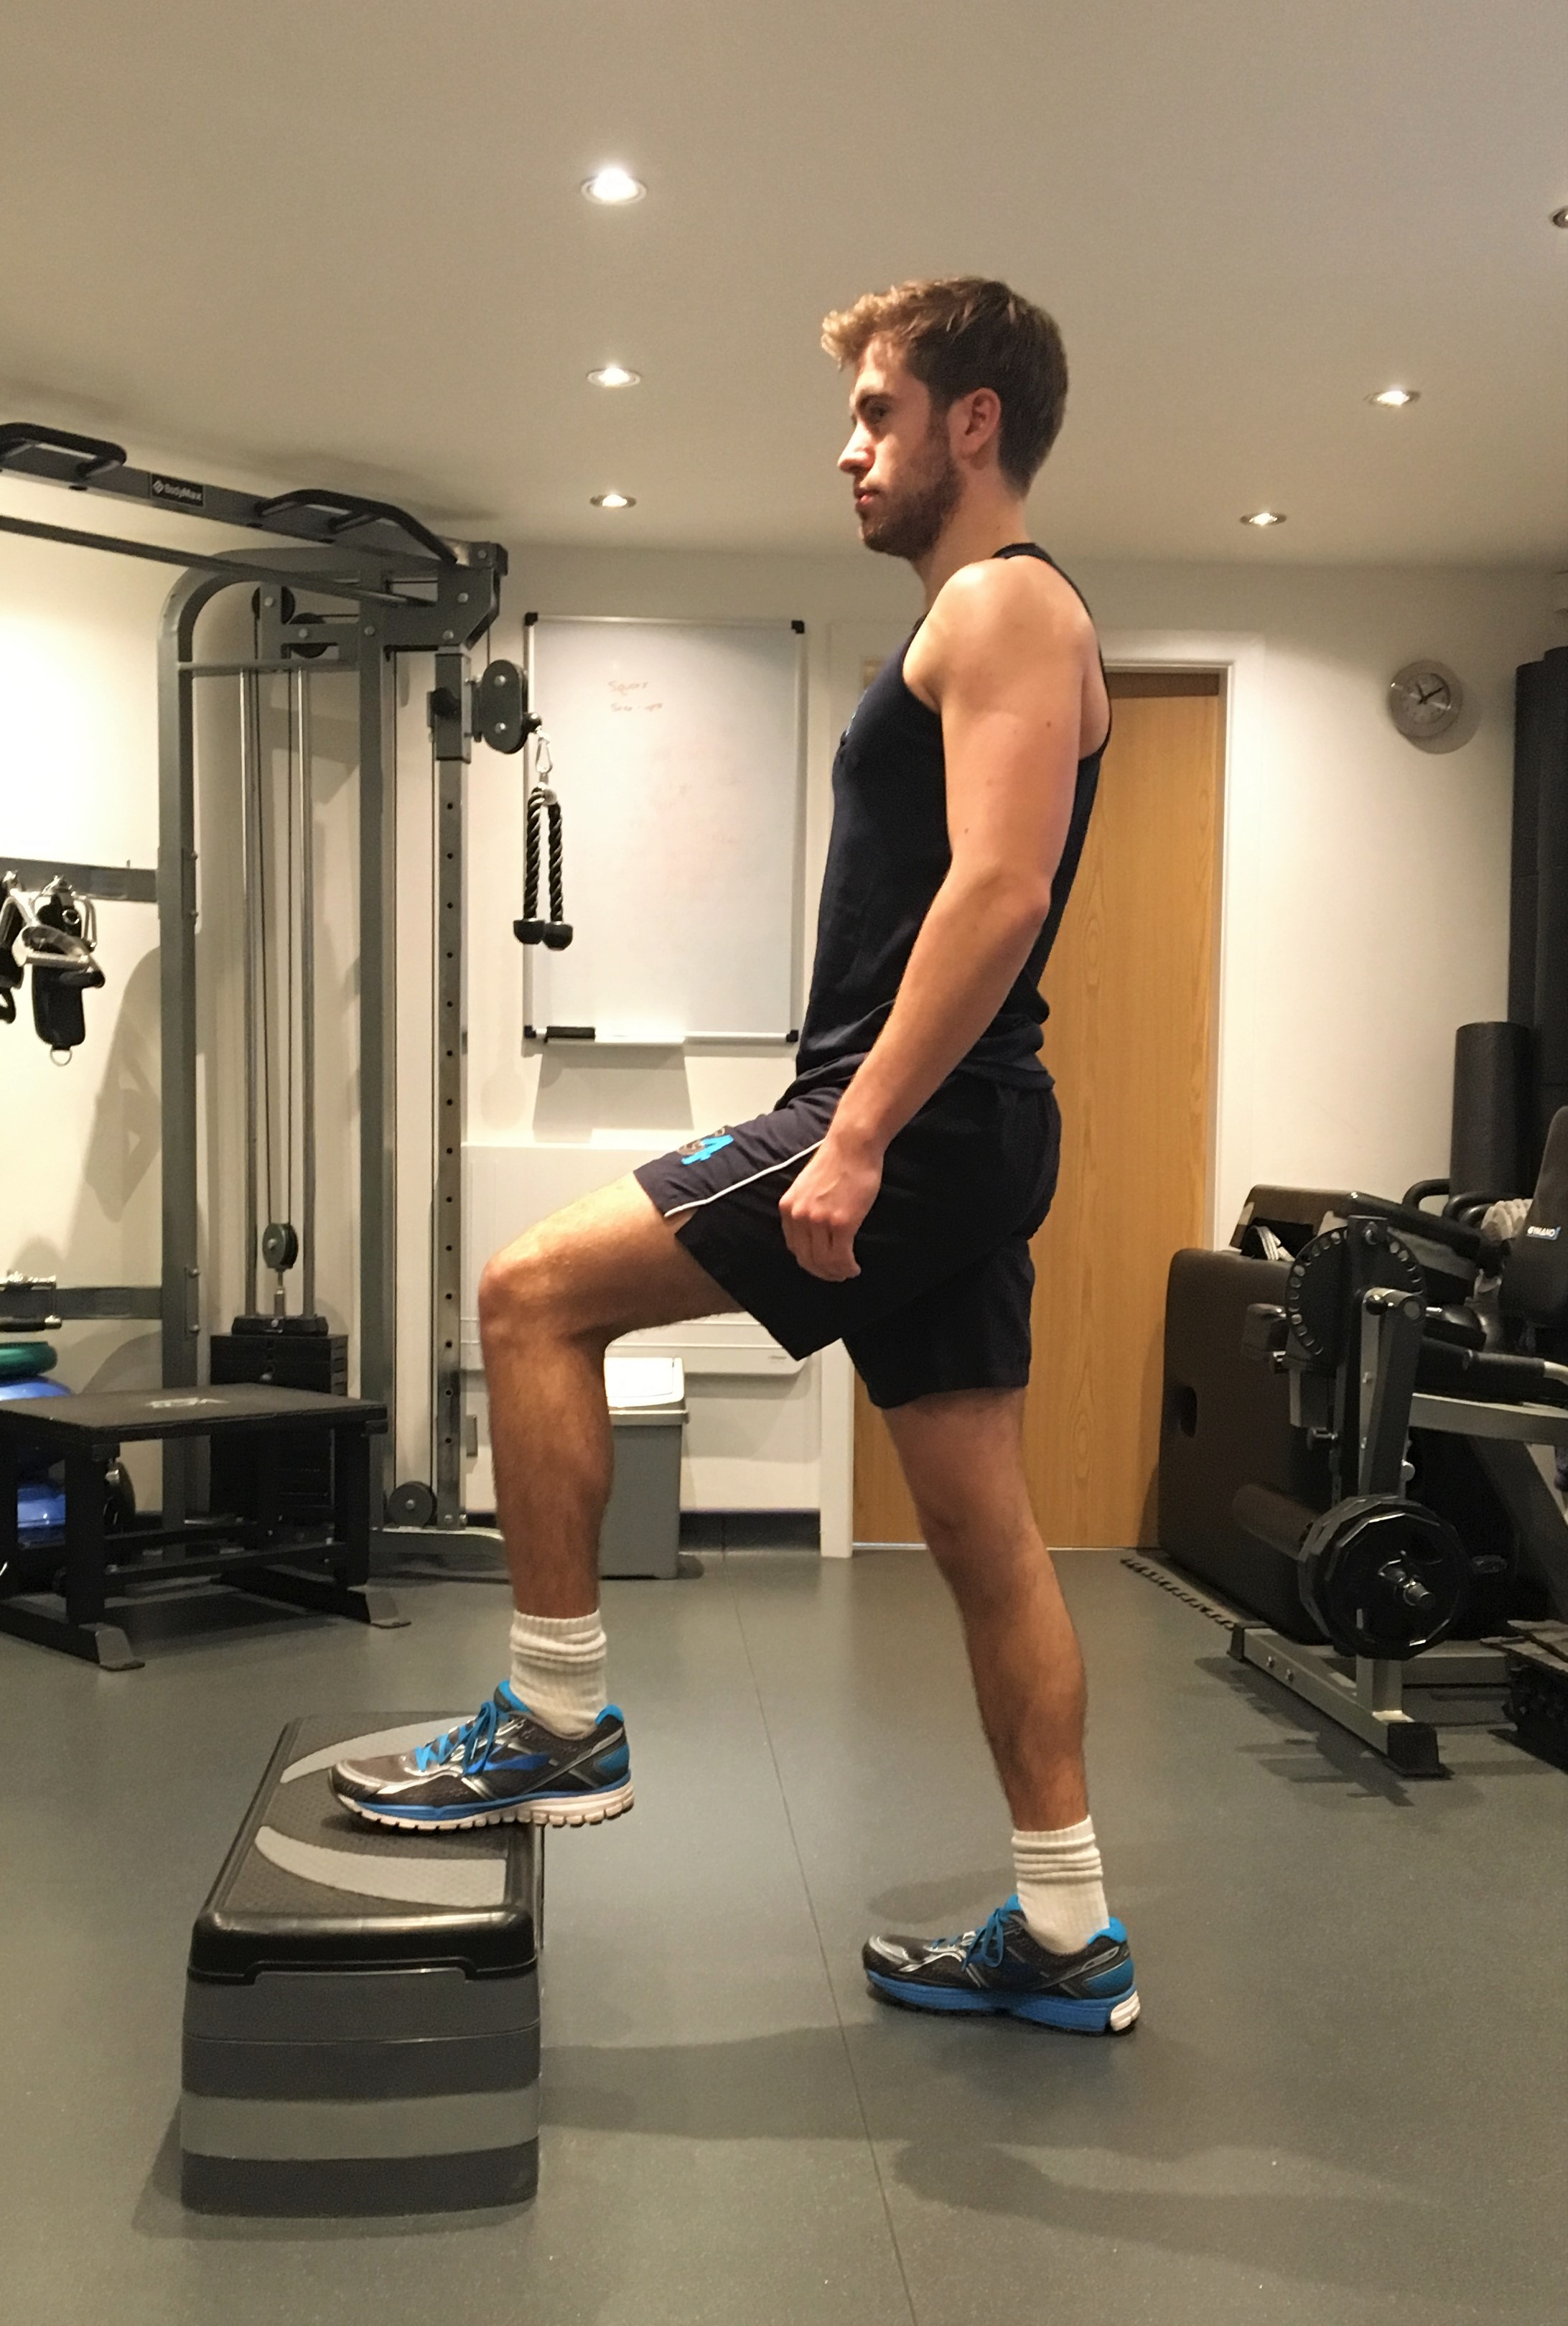 Step Ups 10 Minute Cardio Workout Strength Circuit With Builtlean Single Leg Up Physiotherapy Fitness 2184x3239